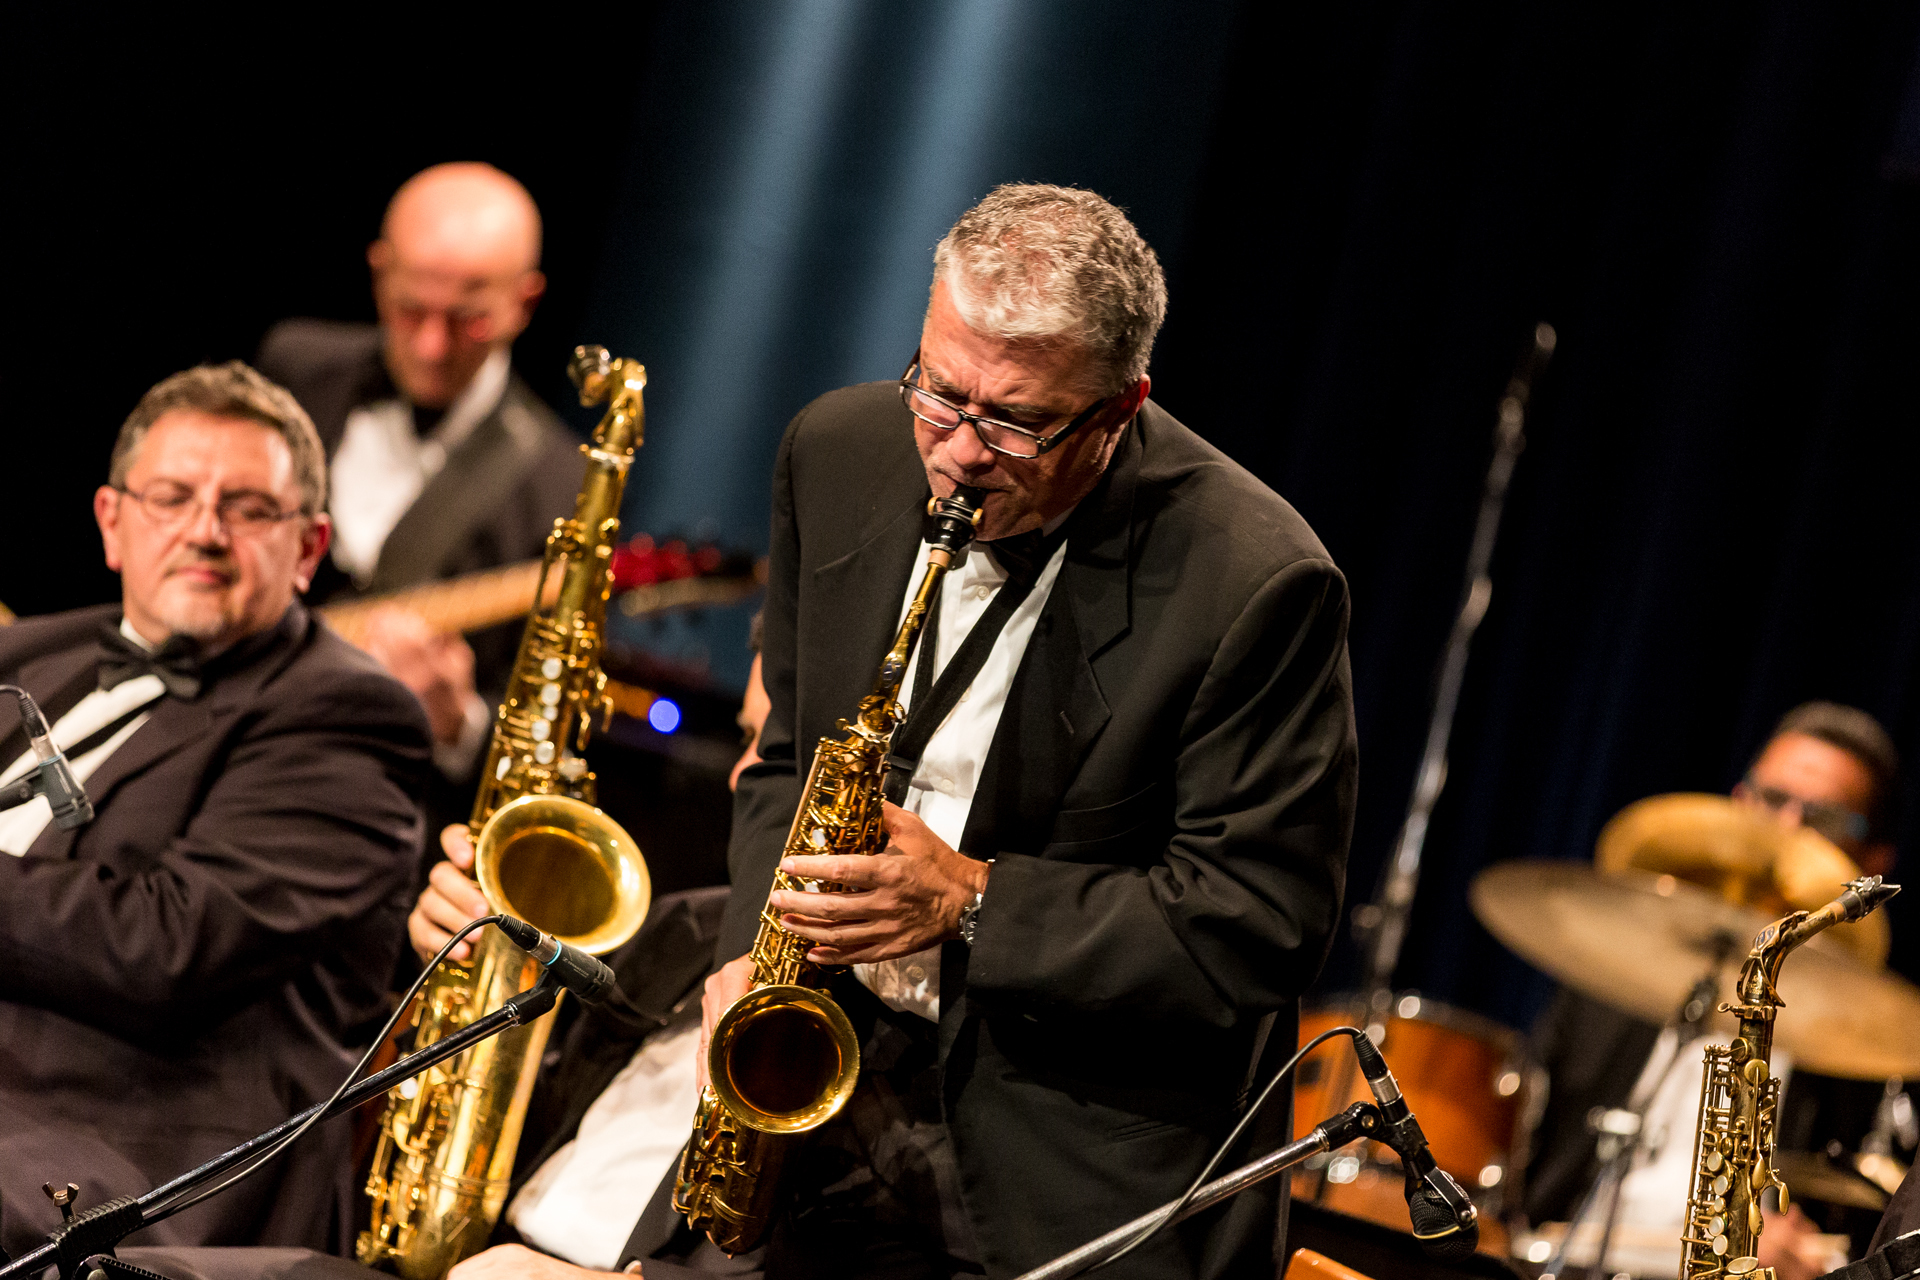 2016_10_15_Nick_Orchestra_Blue_Note_210609_5D3_7837